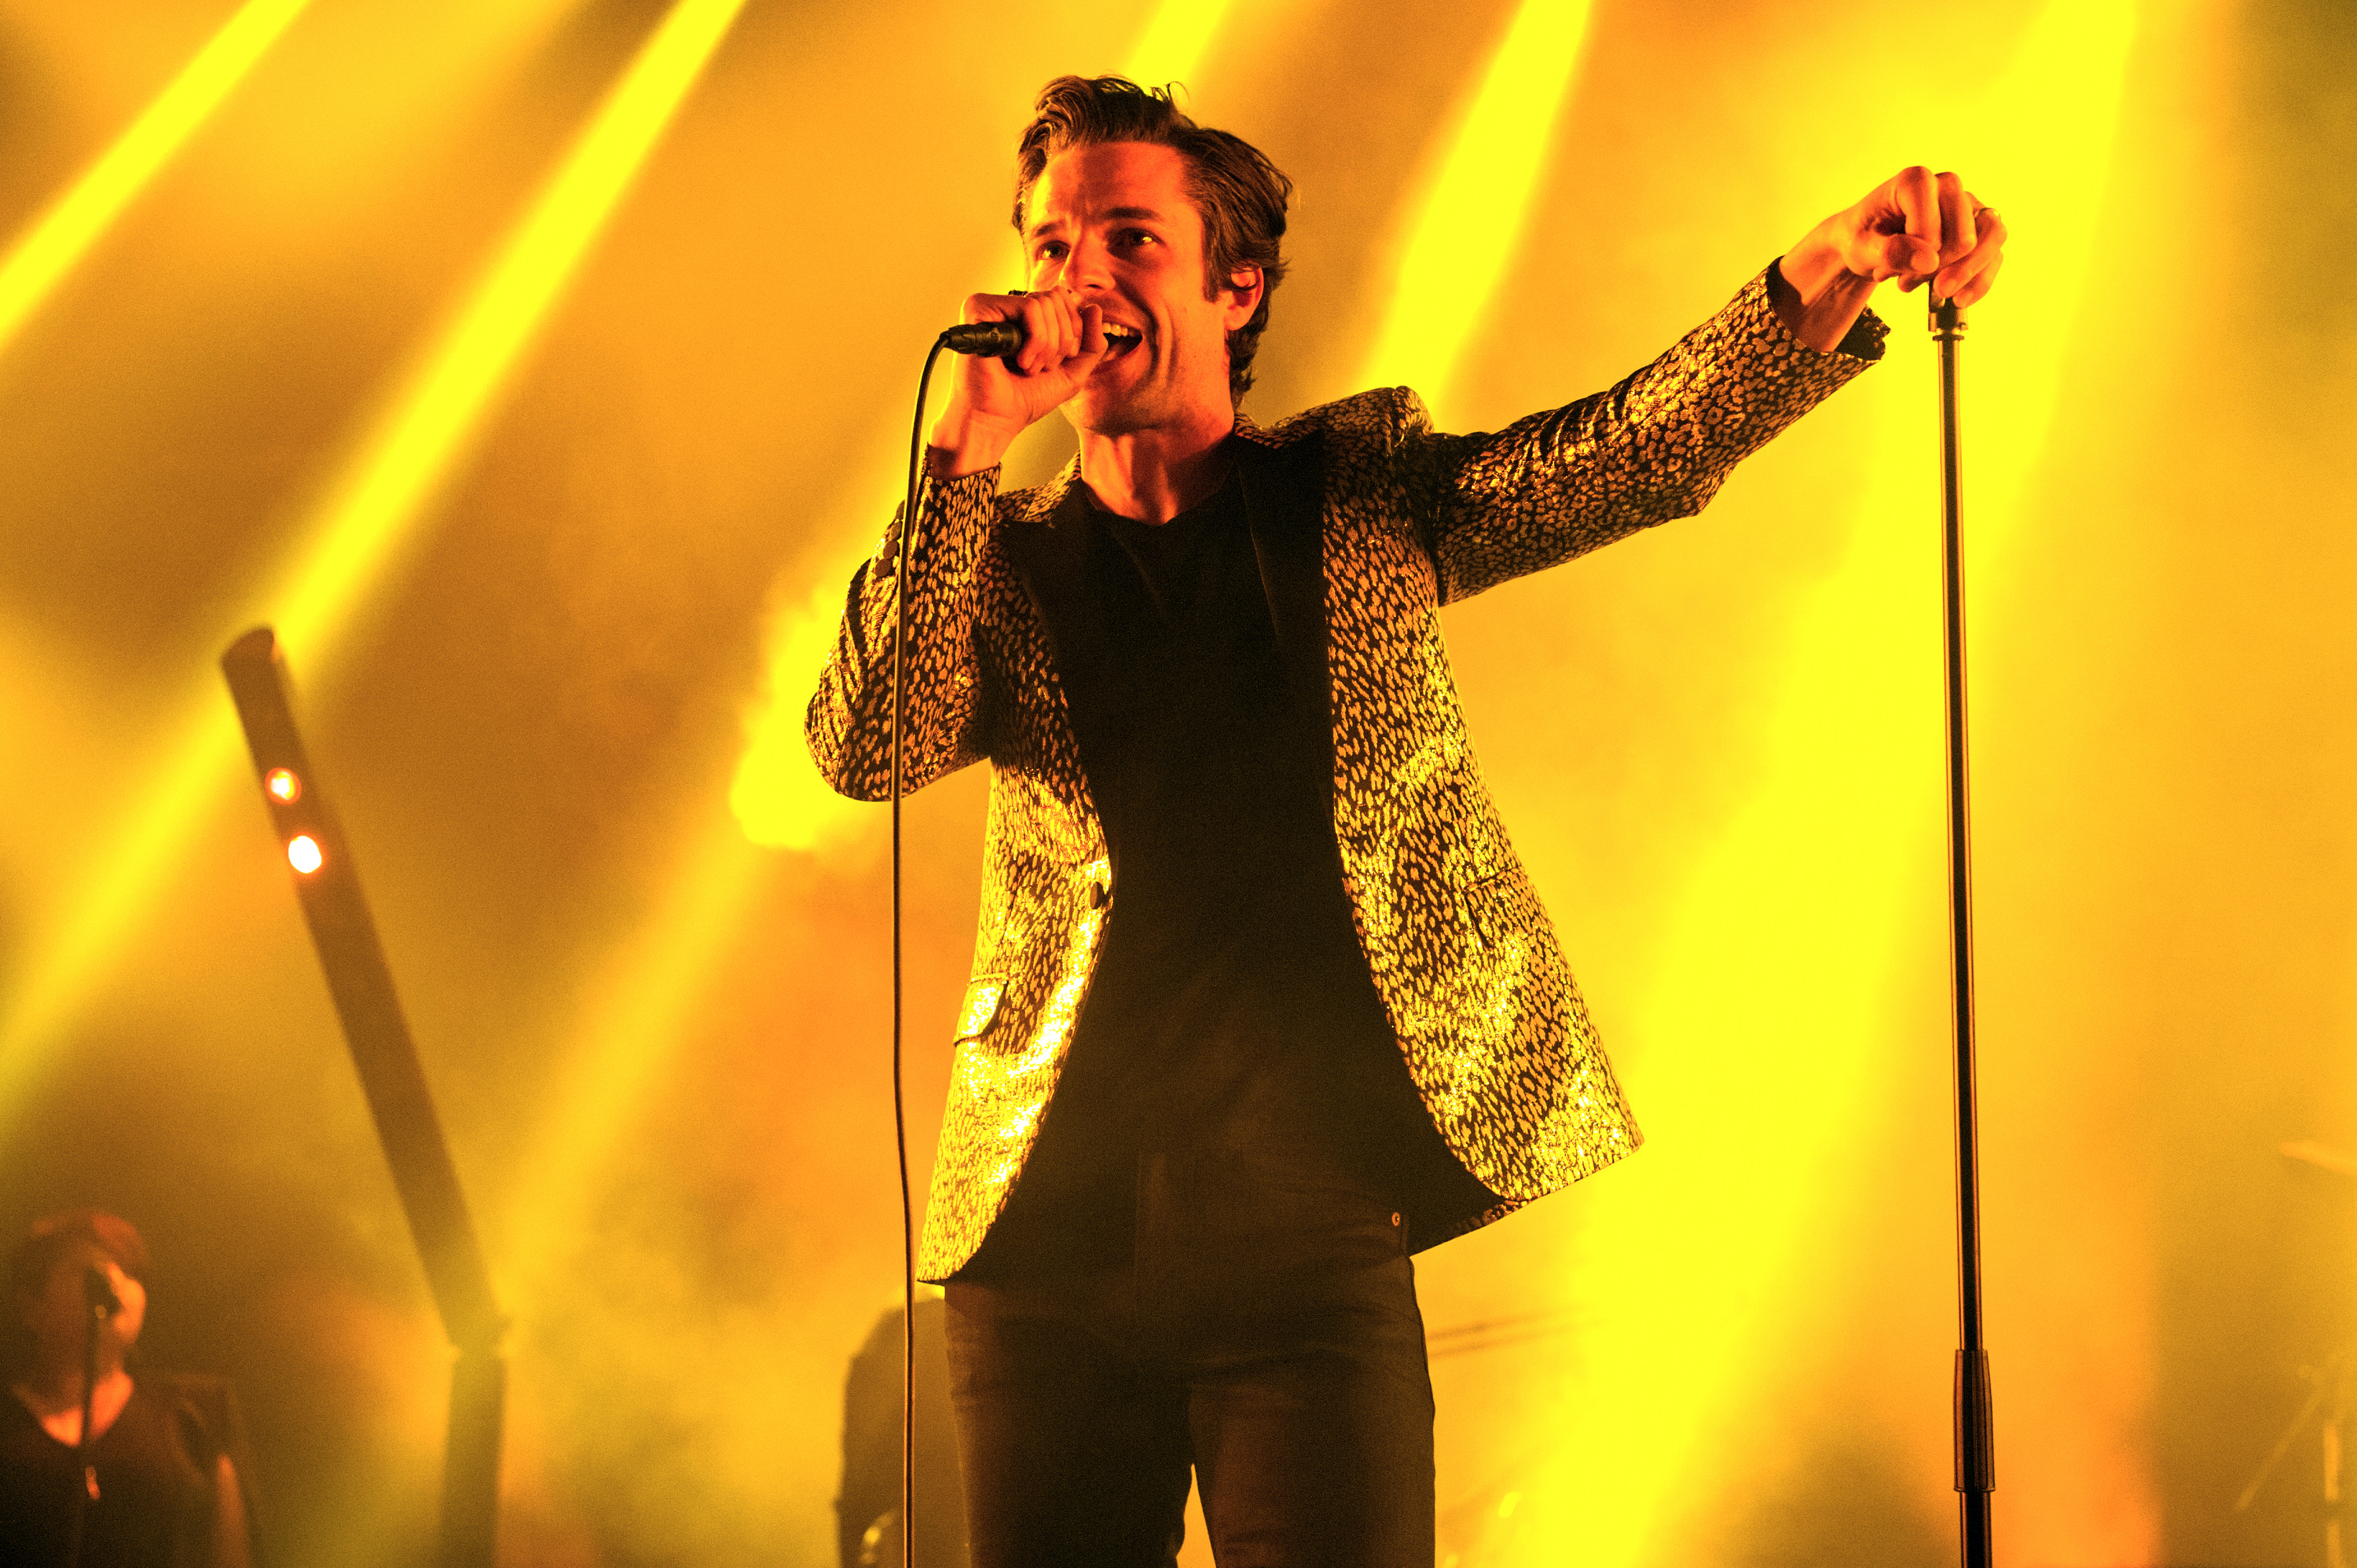 The Killers have started writing their next album and might have new music by